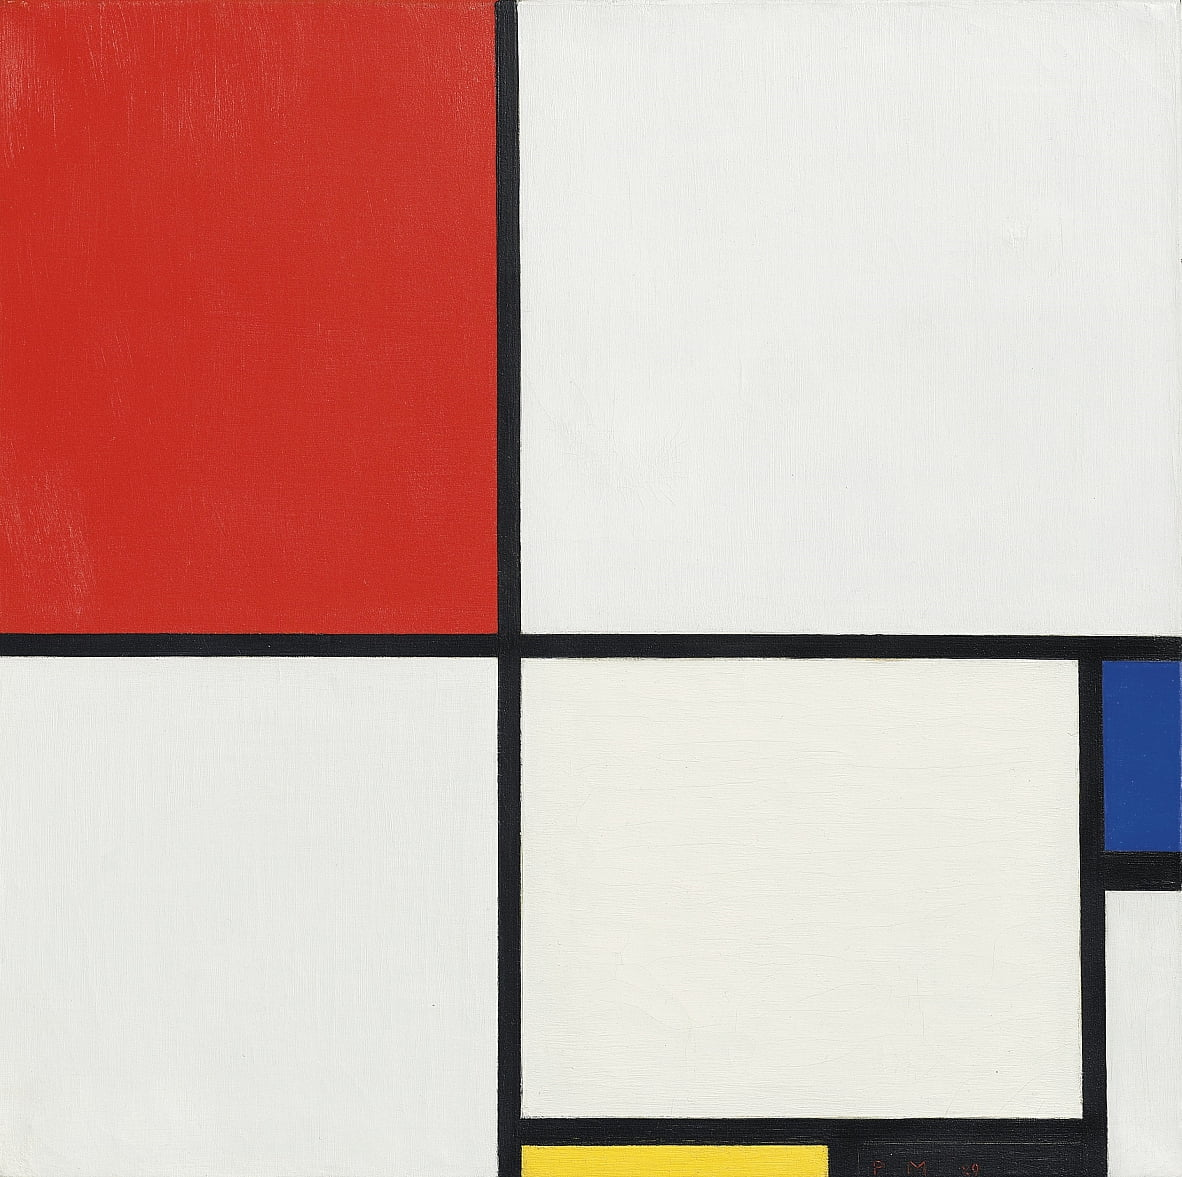 Composition No. III, with red, blue, yellow and black, 1929 by Piet Mondrian